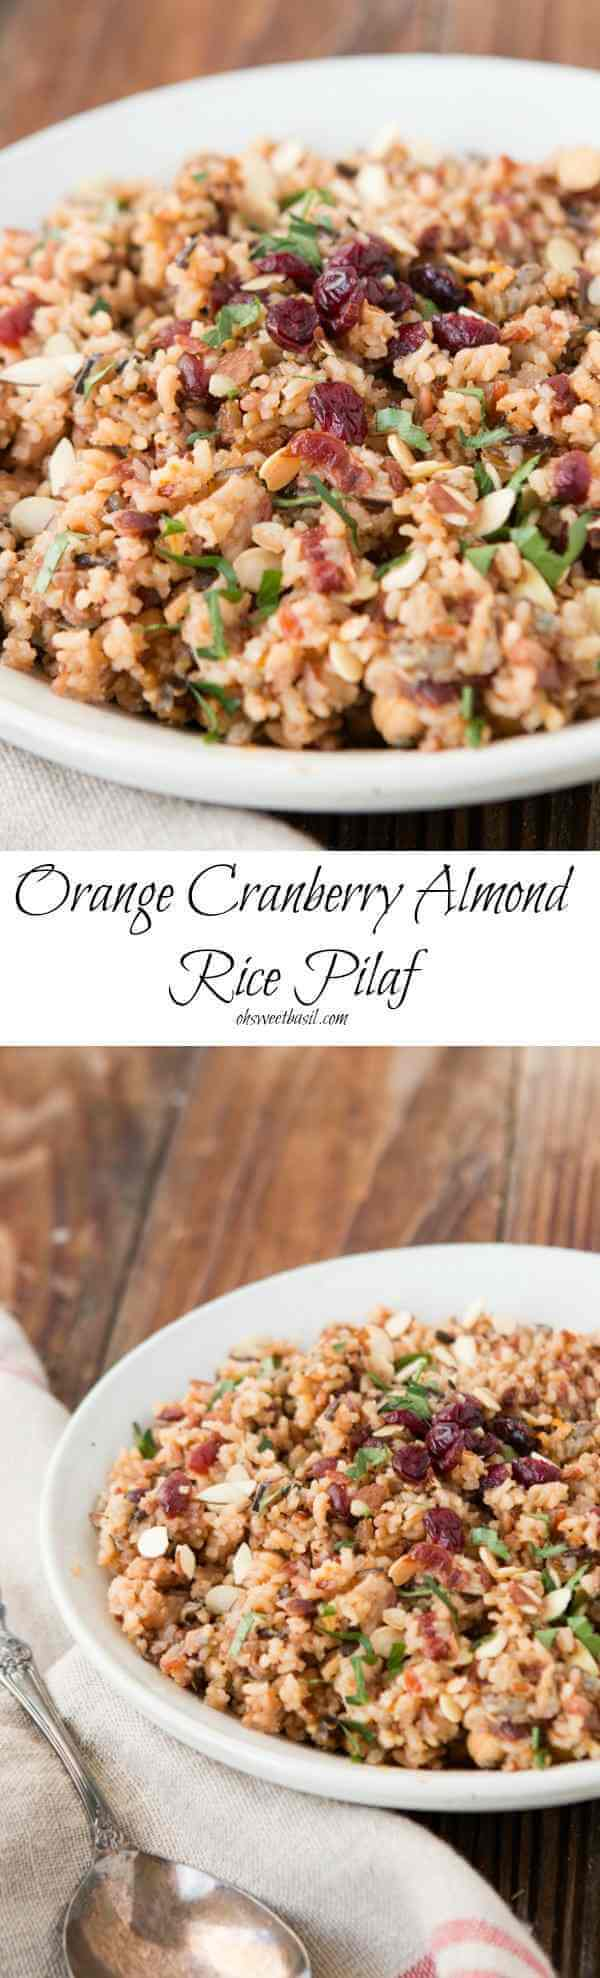 ... of cake to make! Orange Cranberry Almond Rice Pilaf ohsweetbasil.com